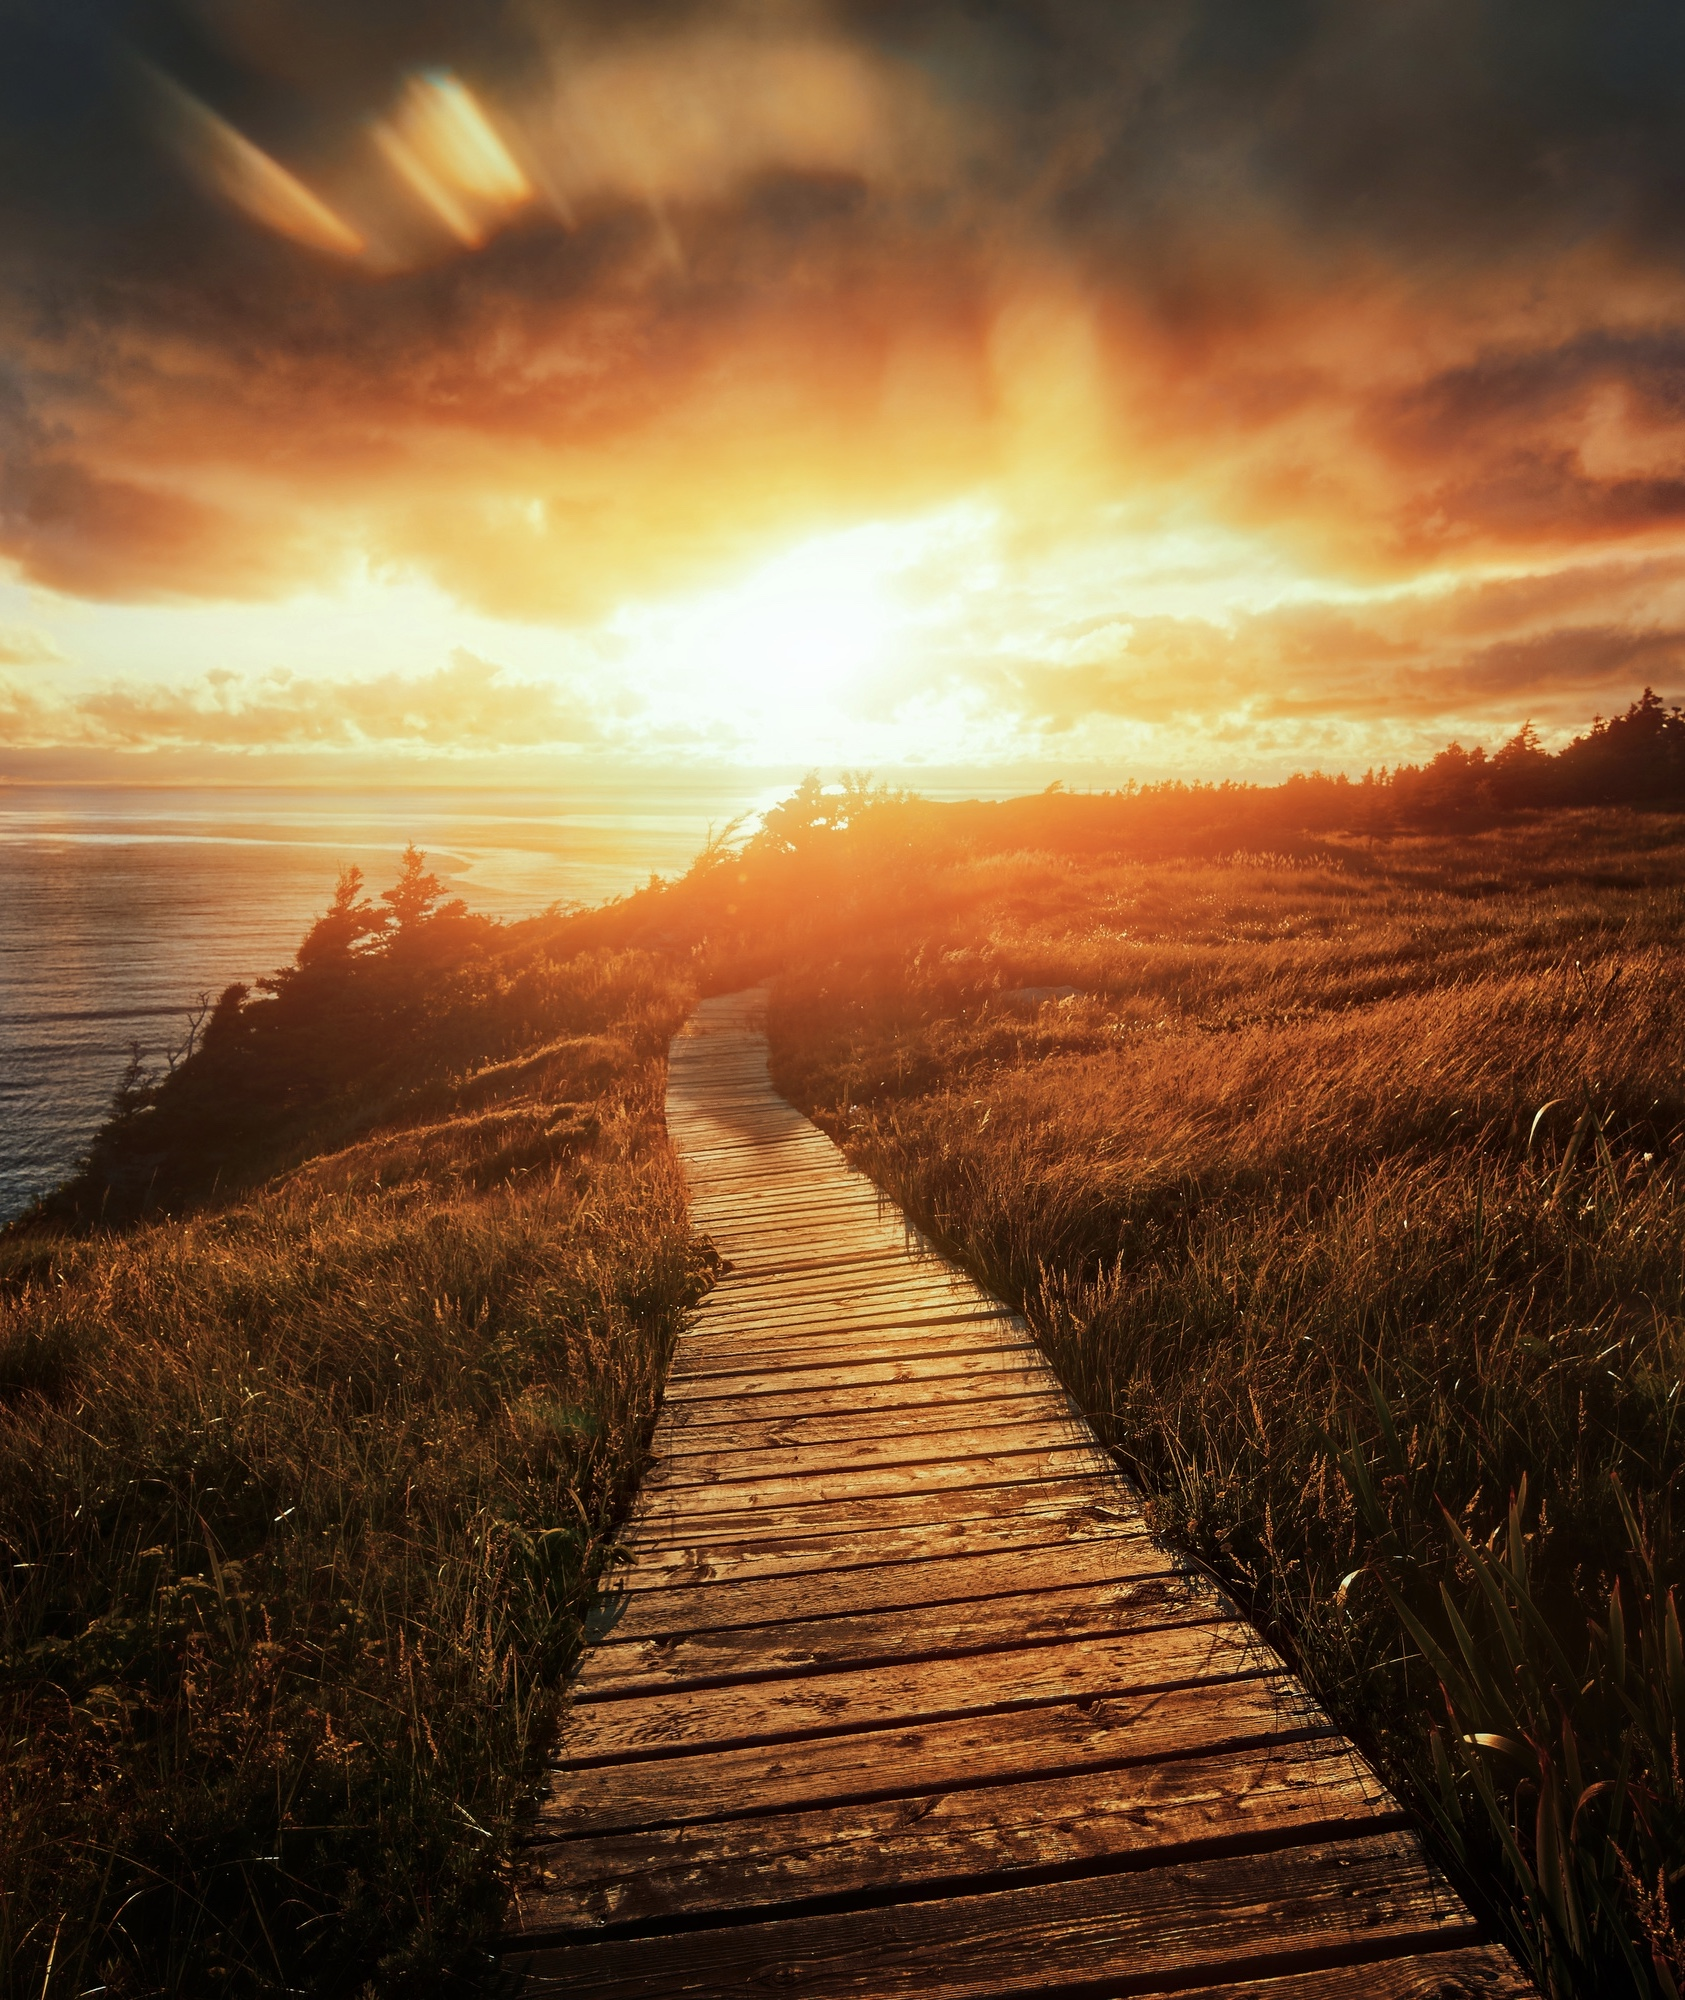 A boardwalk through a grassy area on the shore of a river. The sun is setting directly ahead and the sky is a bright orange and yellow.